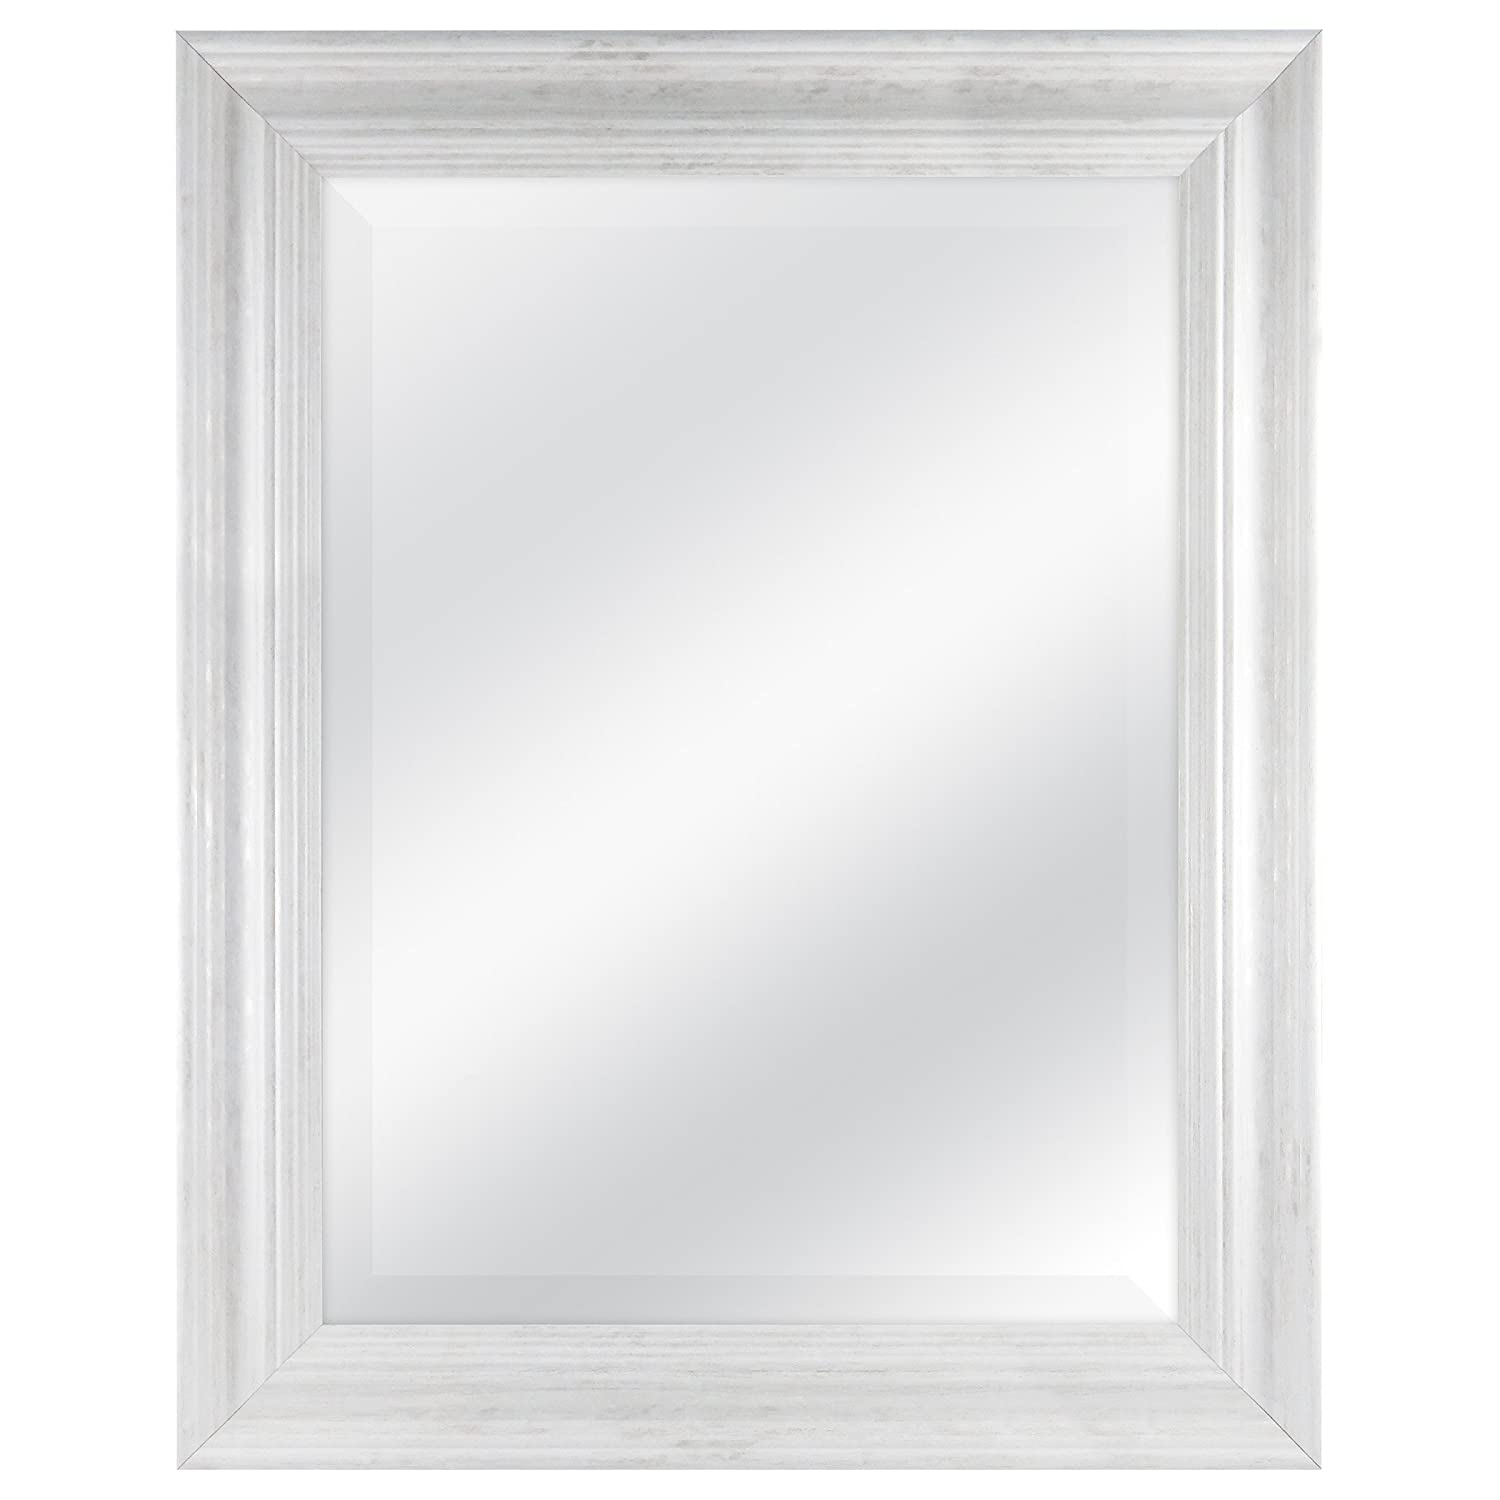 MCS 18x24 Scoop Mirror 23.5x29.5 Outside Dimension with White Wash Finish MCS Industries 20547